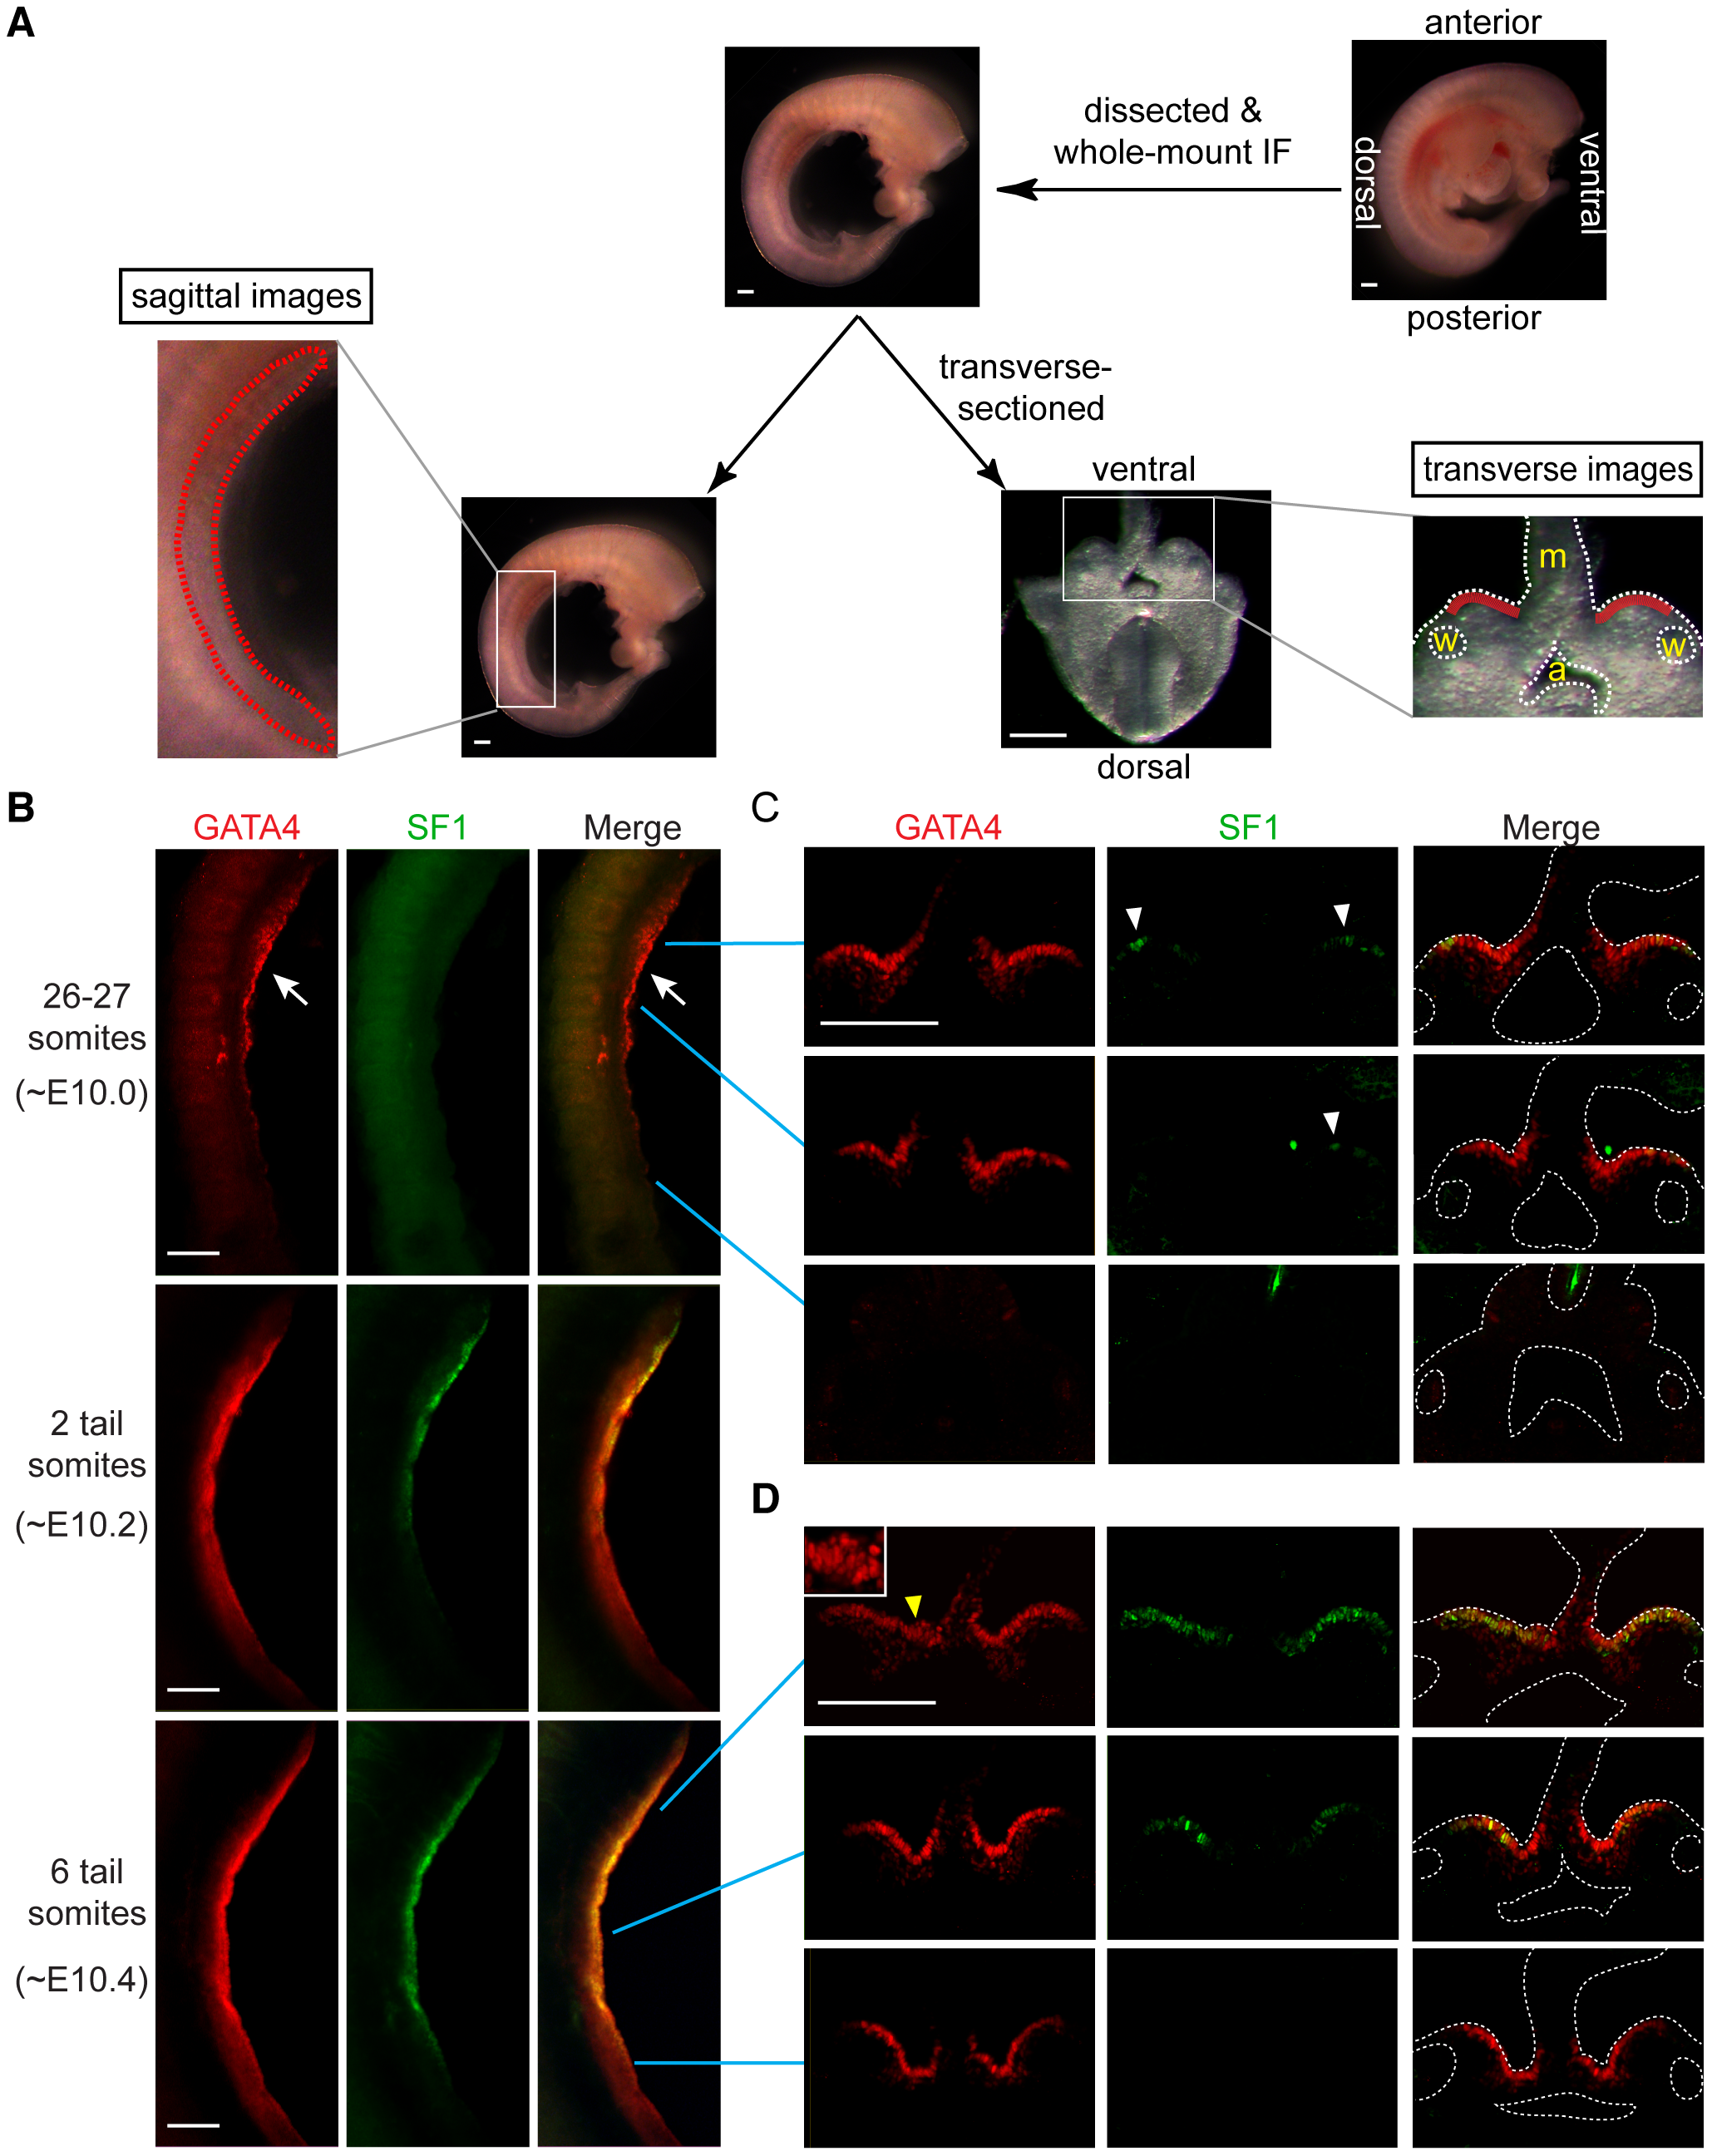 GATA4 expression precedes coelomic epithelial thickening and progresses from anterior to posterior.